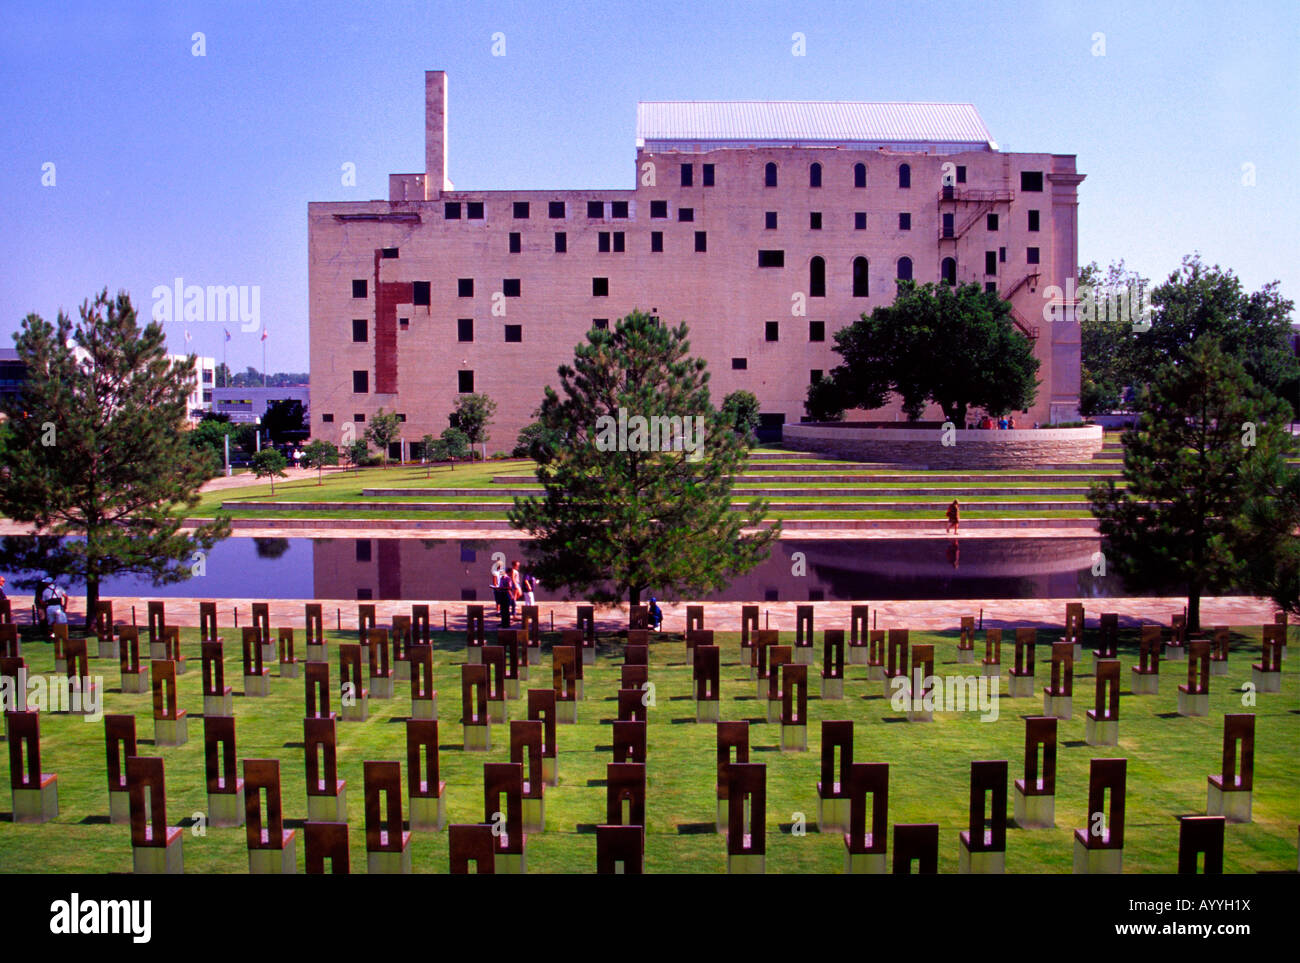 Oklahoma City Memorial and empty chairs created to honor those who died in the terrorist act by Timothy McVeigh Stock Photo